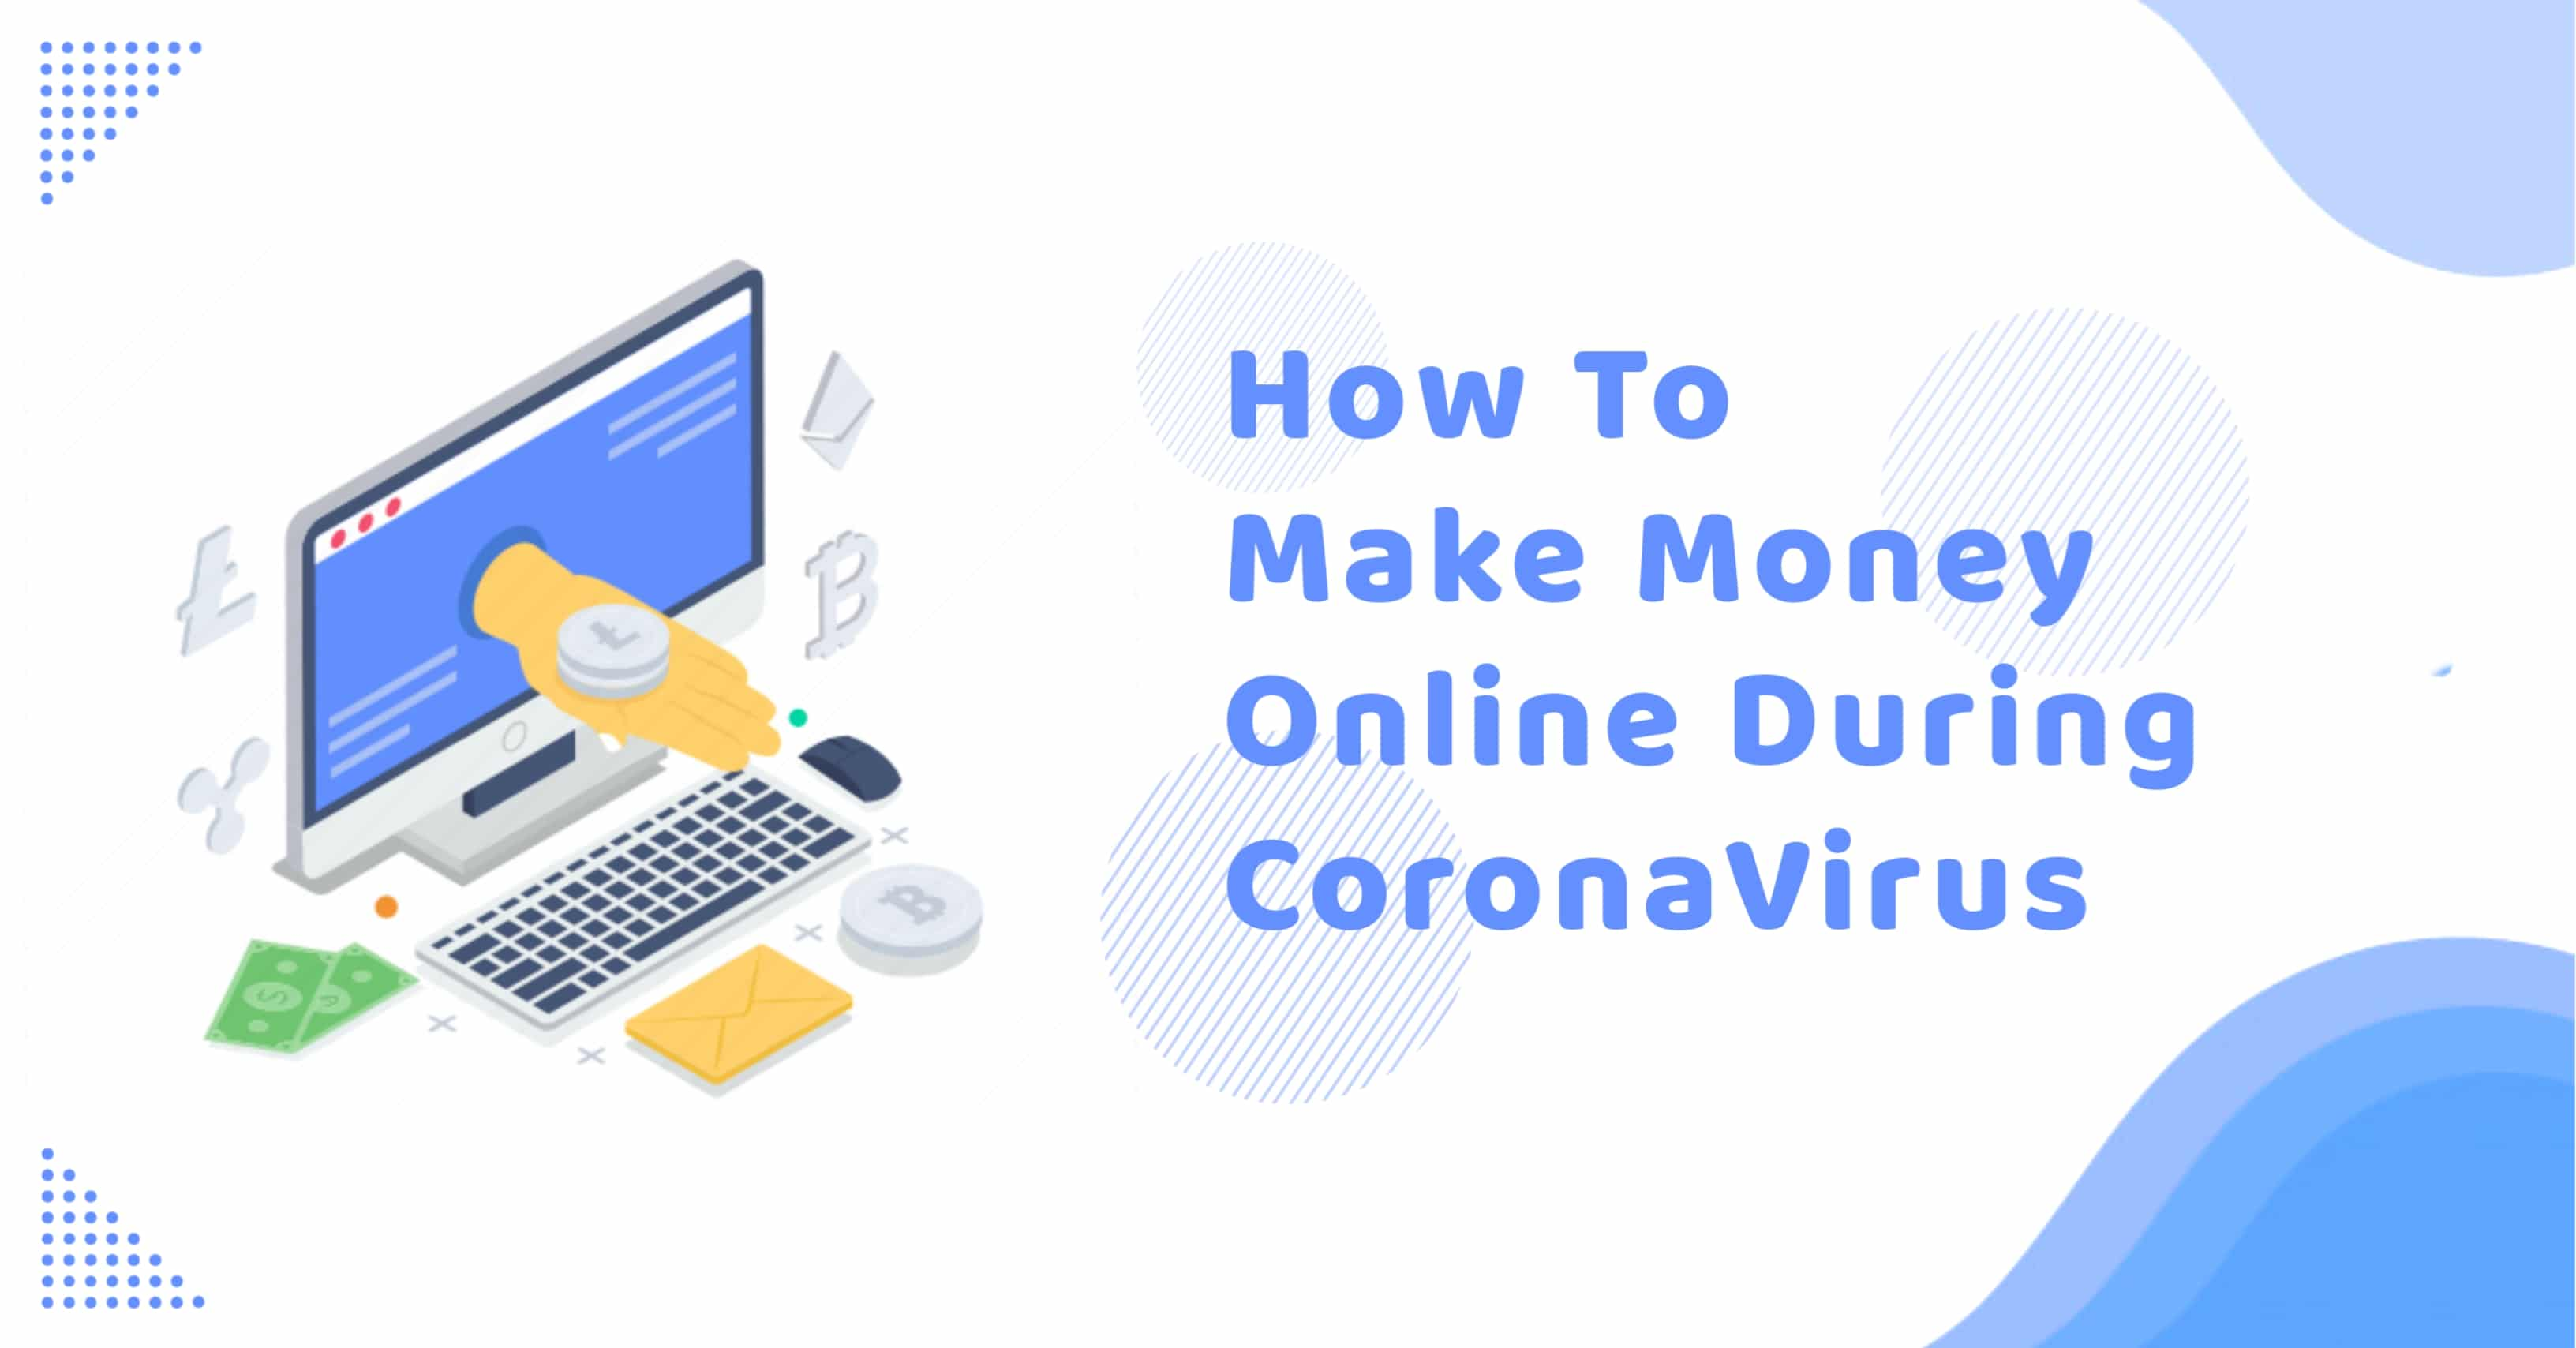 How To Make Money Online During Coronavirus